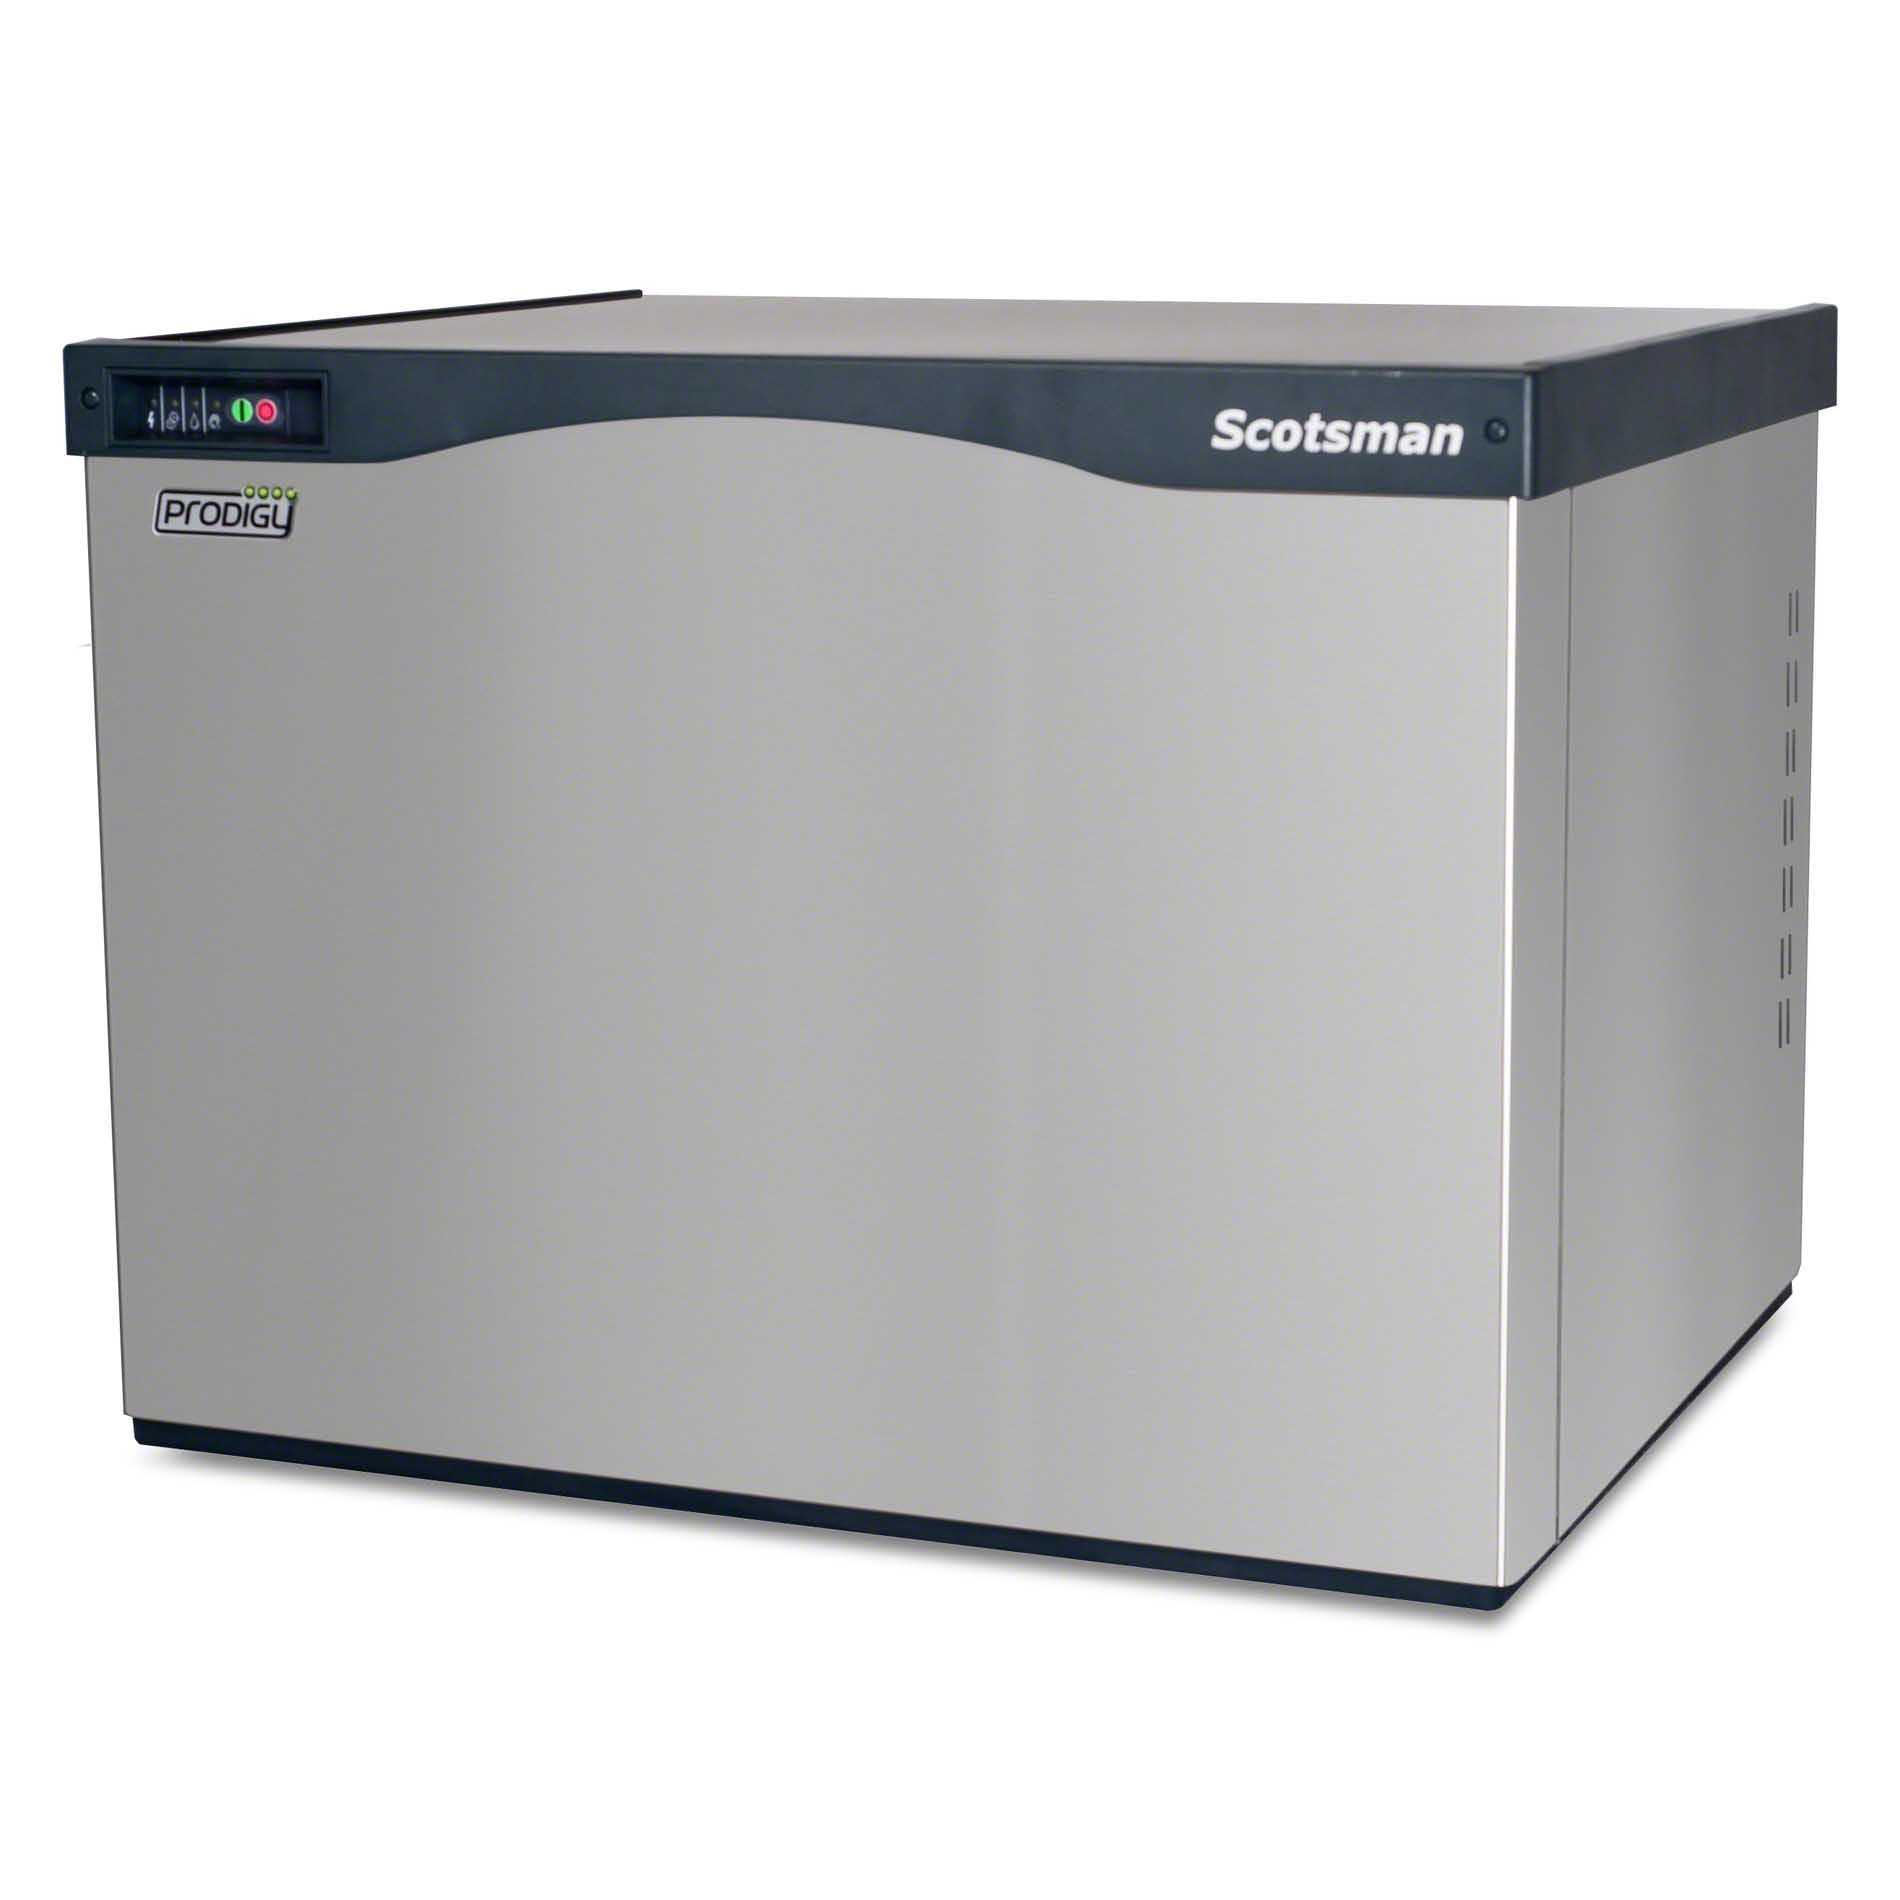 Scotsman - C0330MW-1A 400 lb Full Size Cube Ice Machine - Prodigy Series - sold by Food Service Warehouse